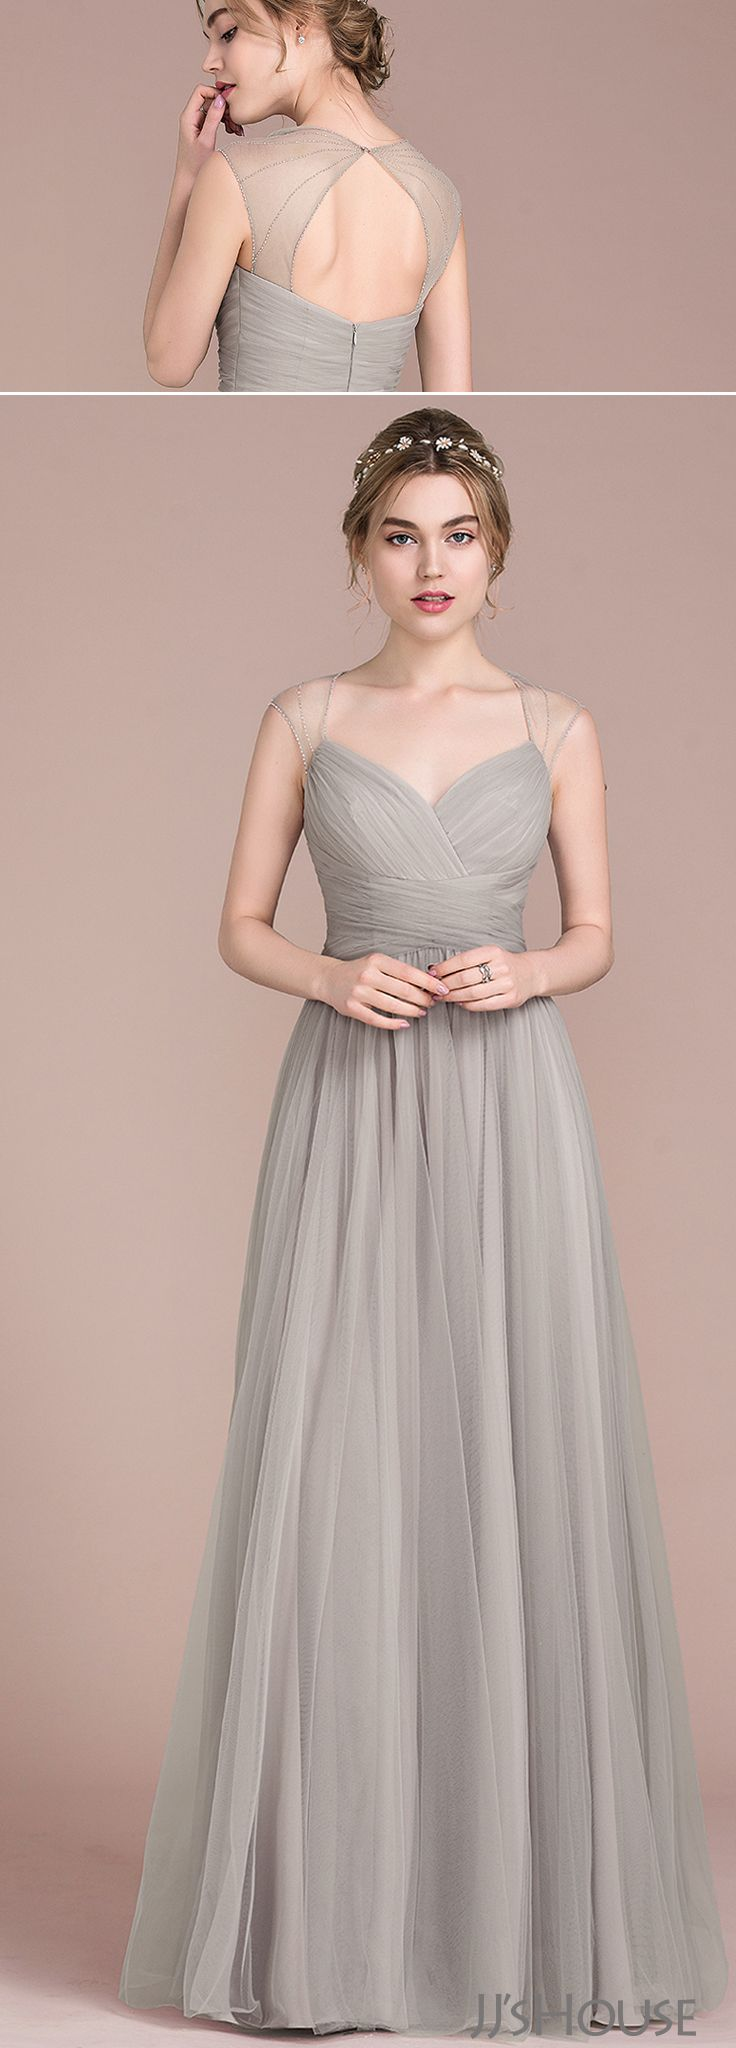 Jjshouse bridesmaid dresses pinterest gowns prom and clothes